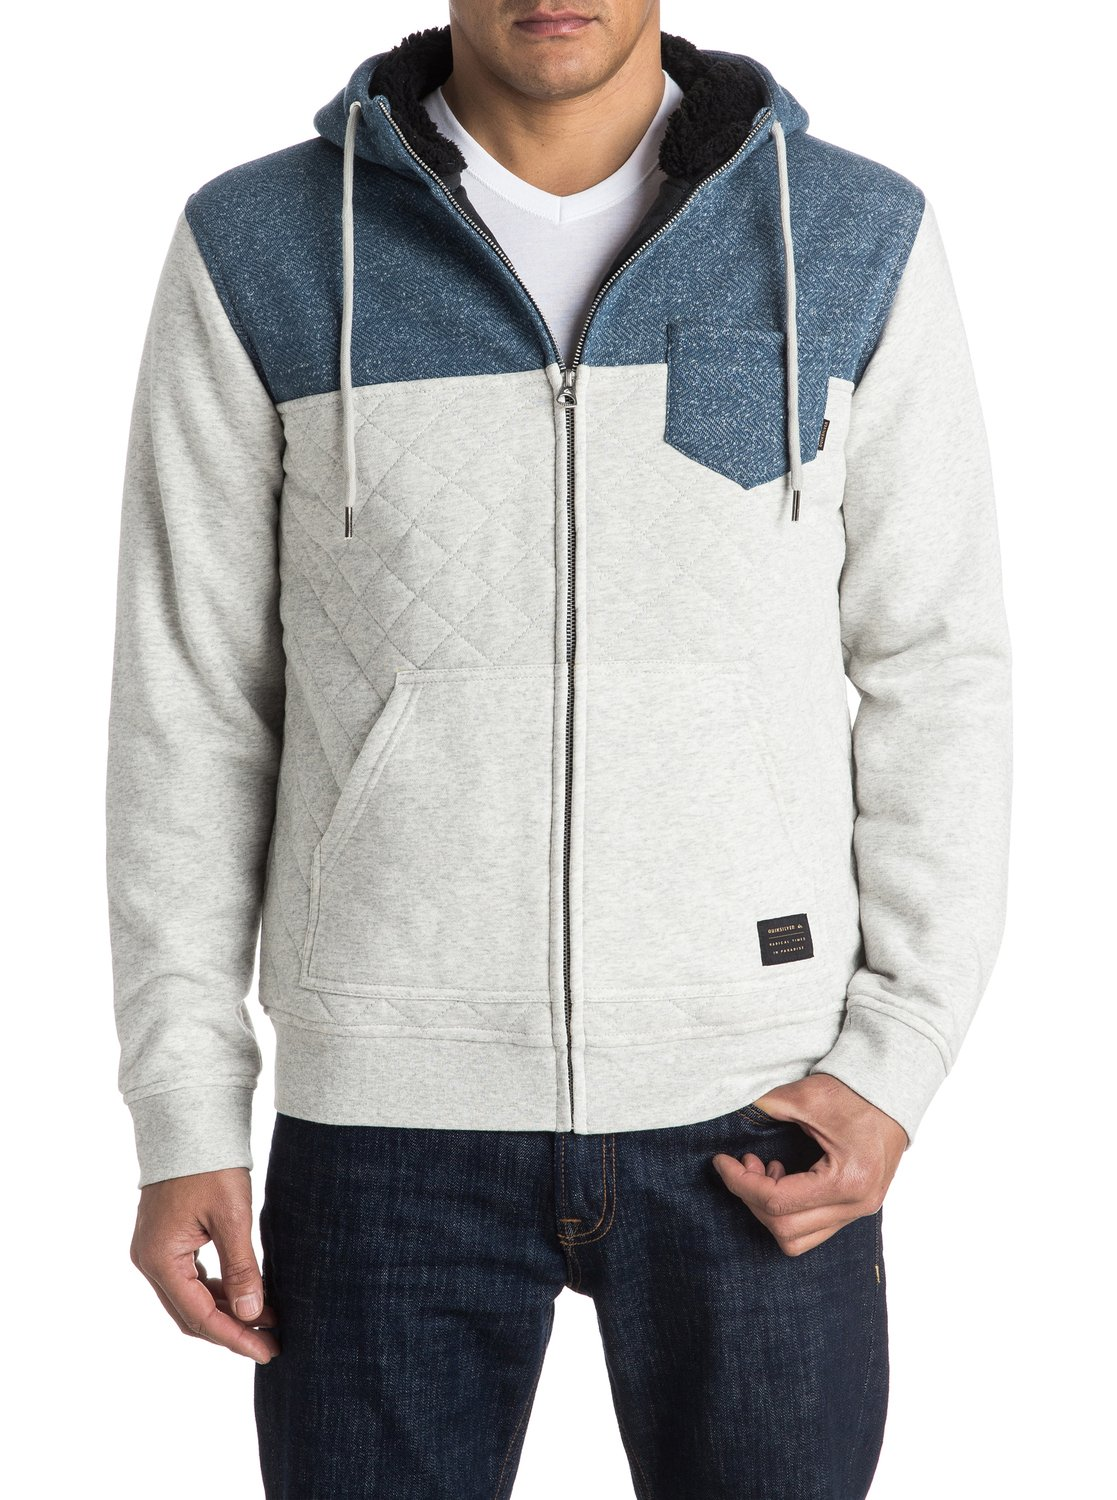 man hoodie grey fleece men quilt zip sweater itm superhero spider az up quilted marvel jacket